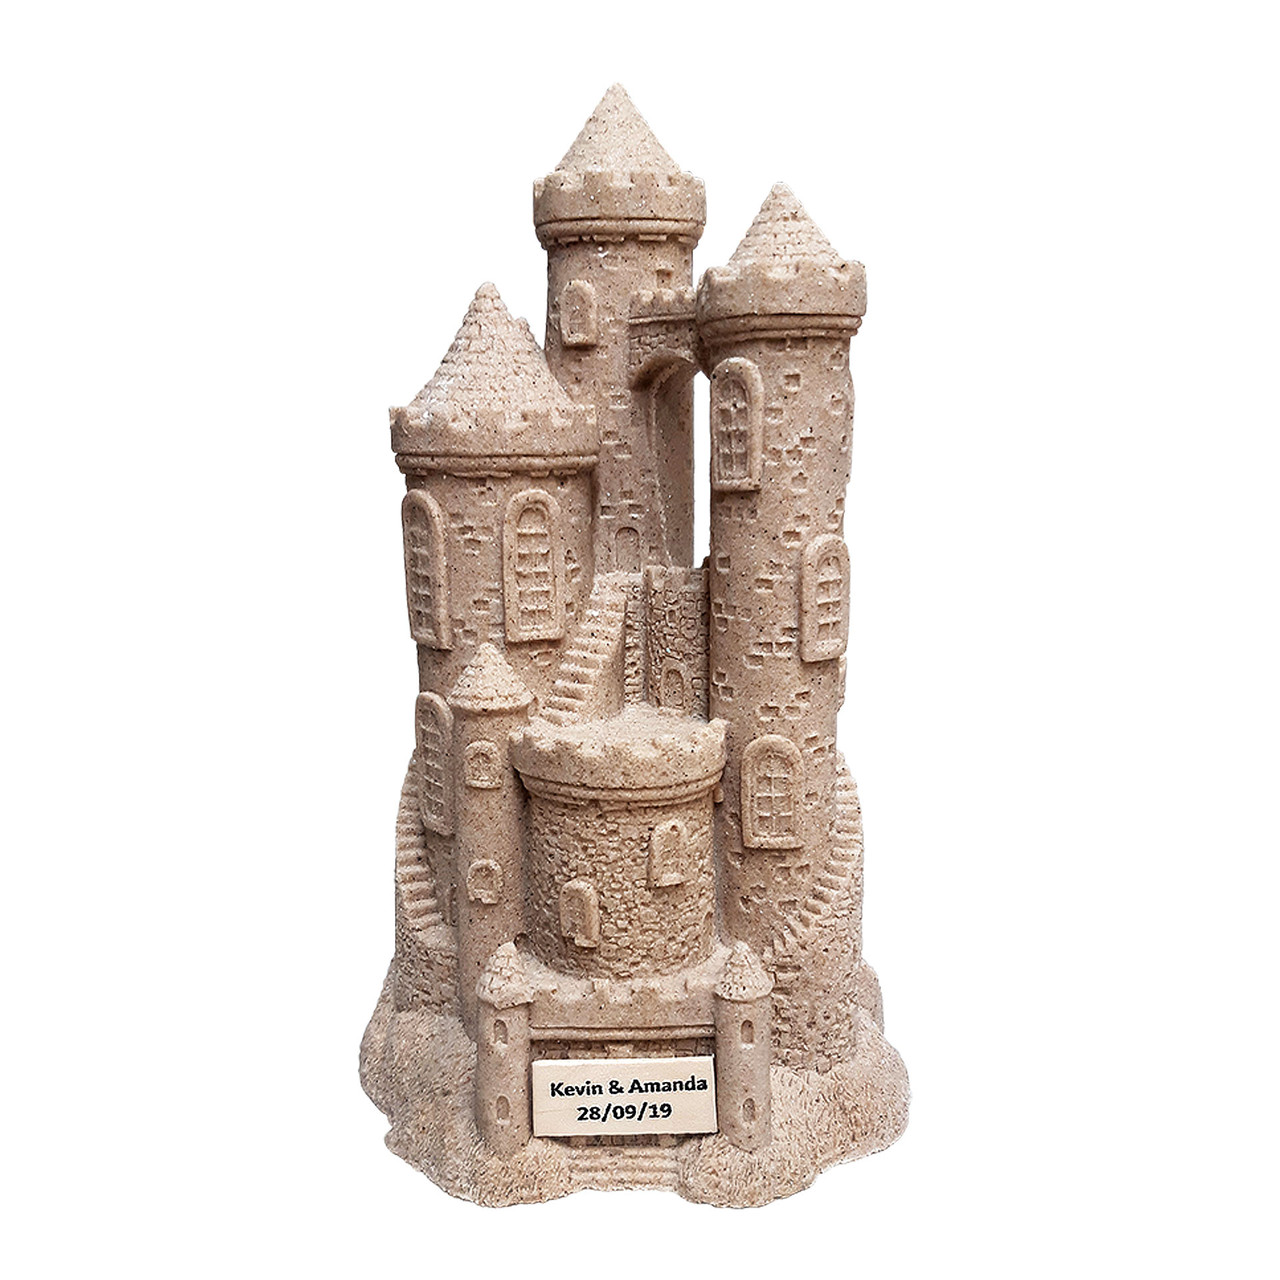 Sandcastle Figurines with Your Name